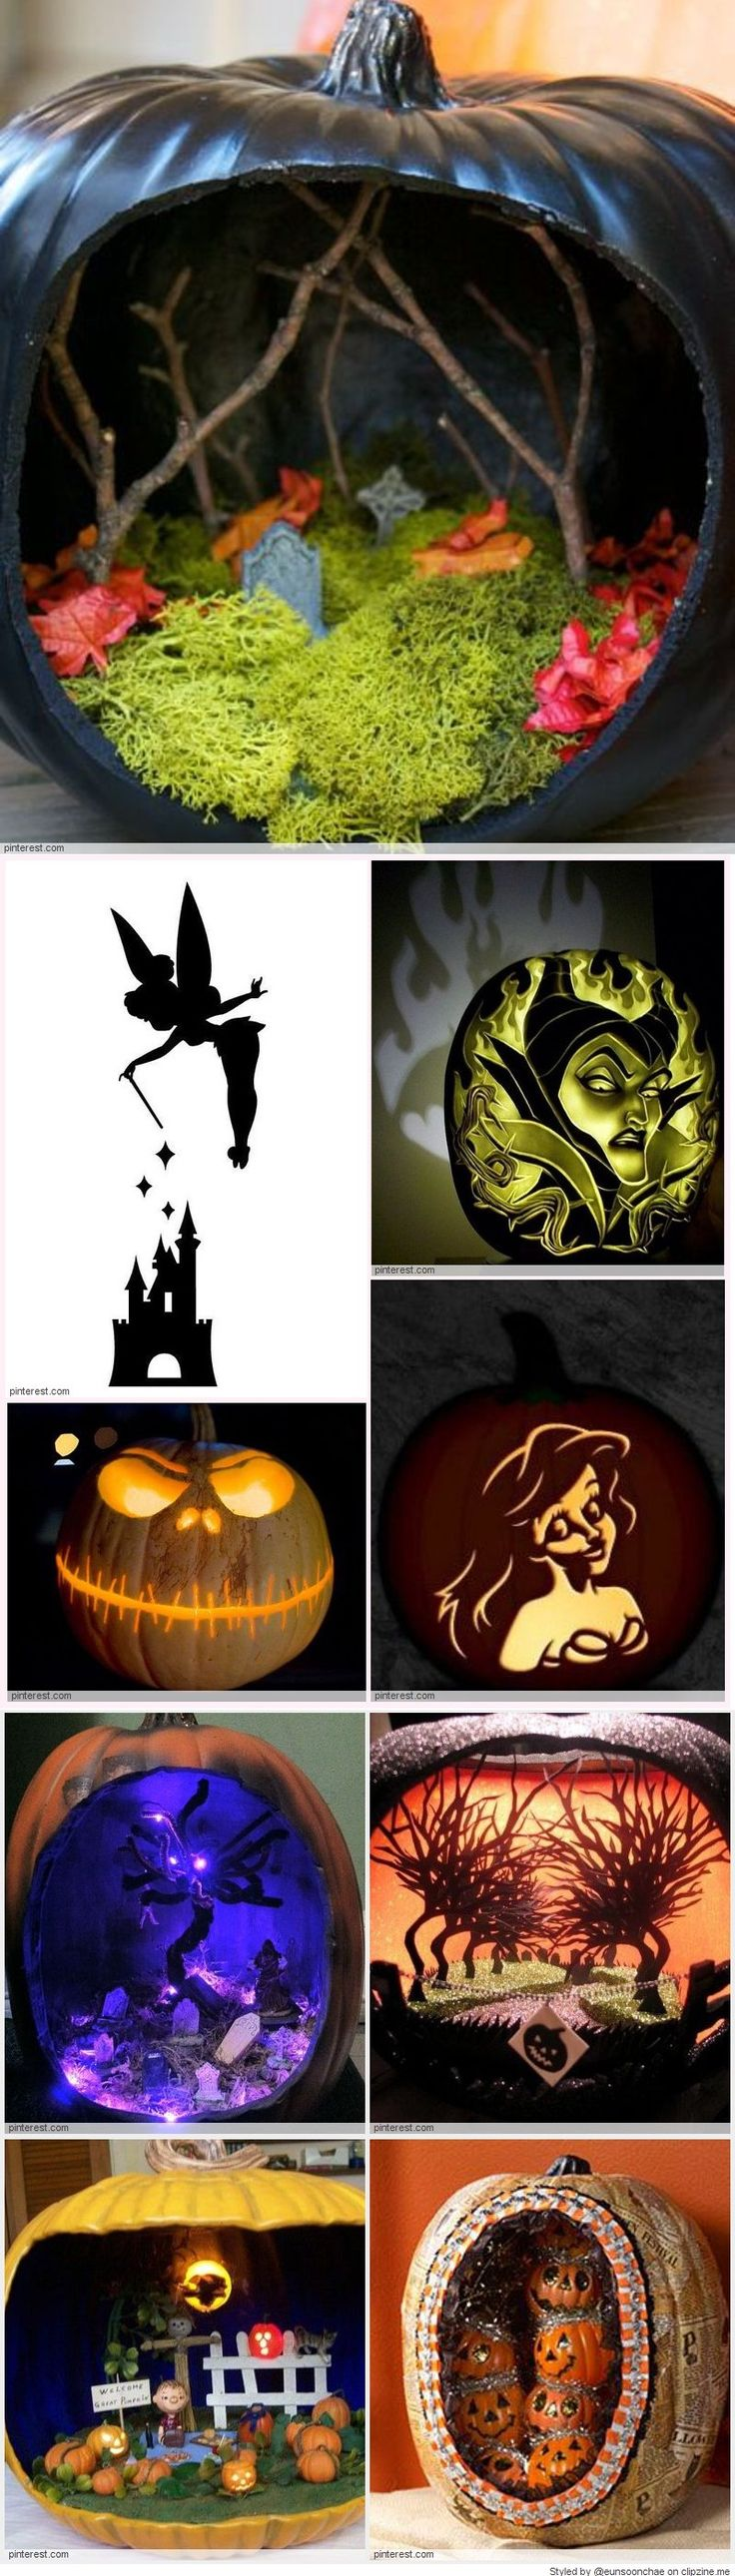 cool pumpkin carving ideas new halloween pinterest halloween deco citrouille et f tes. Black Bedroom Furniture Sets. Home Design Ideas